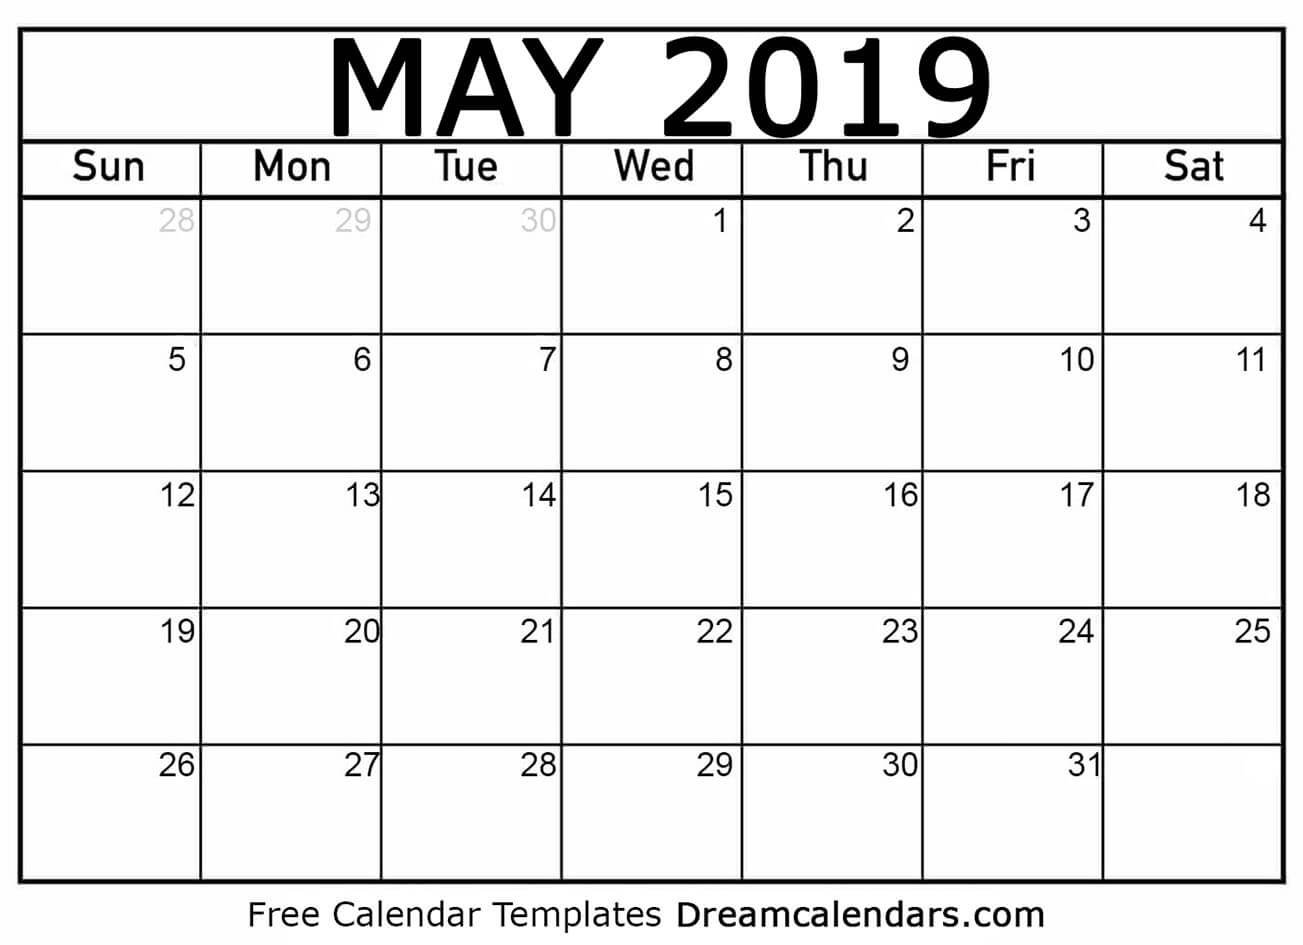 Dream Calendars – Make Your Calendar Template Blog: Blank Printable Calendar 2019 Blog